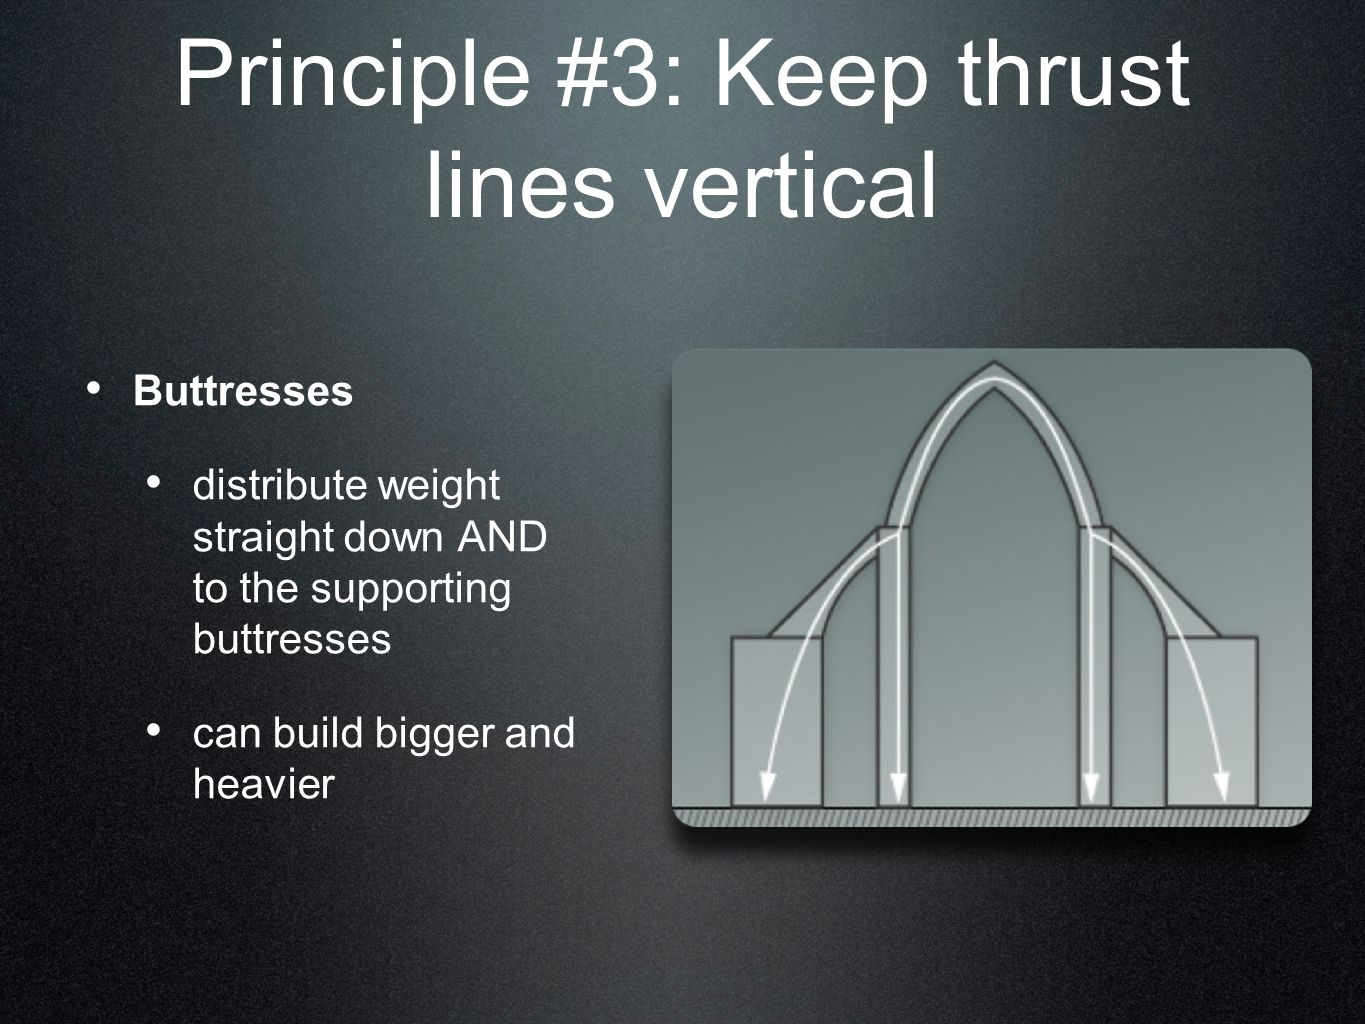 Principle #3: Keep thrust lines vertical